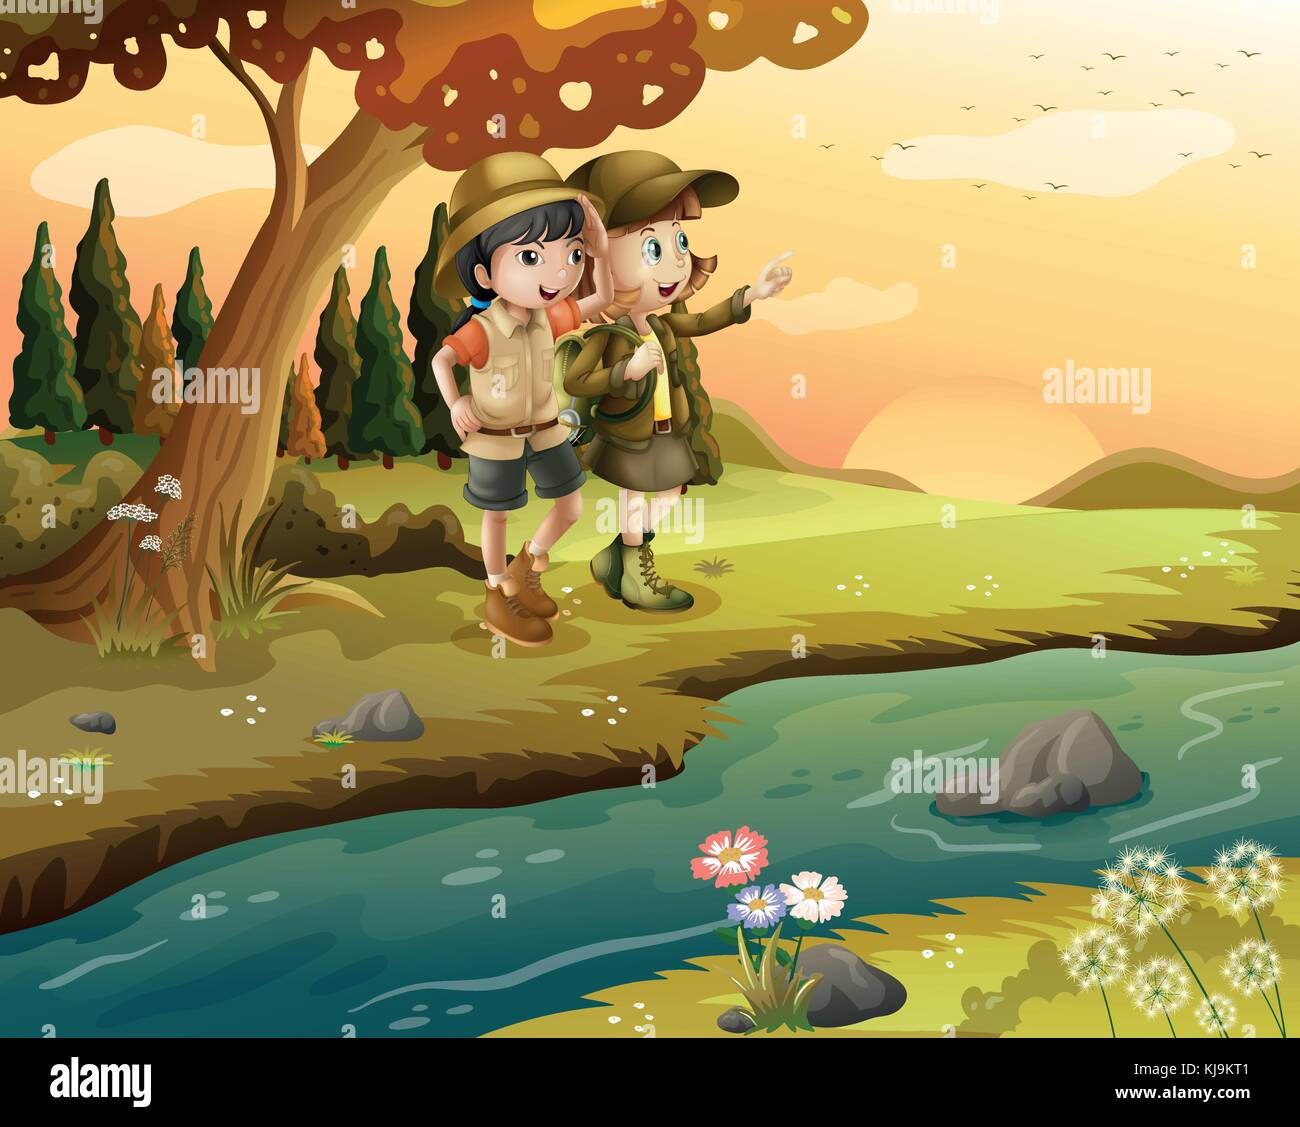 Illustration of a girl and a boy at the riverbank - Stock Vector